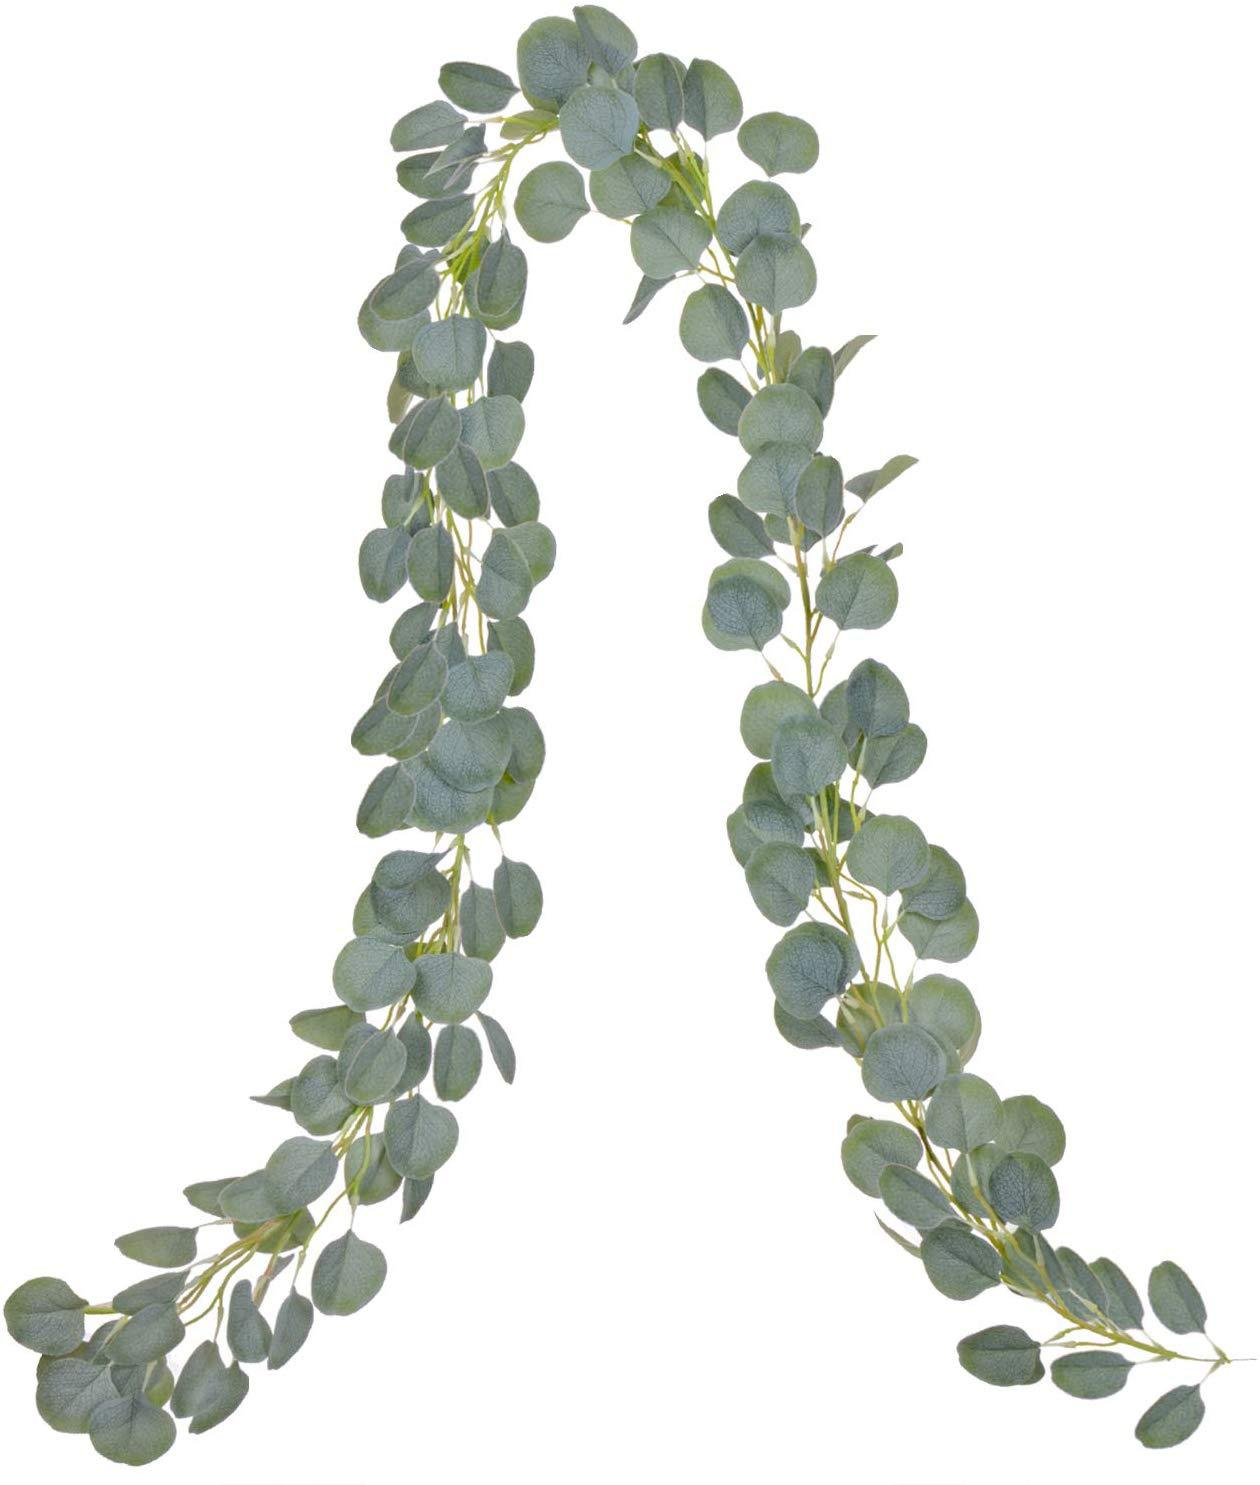 Beautiful Solid Color Faux Leaves for Wedding Receptions